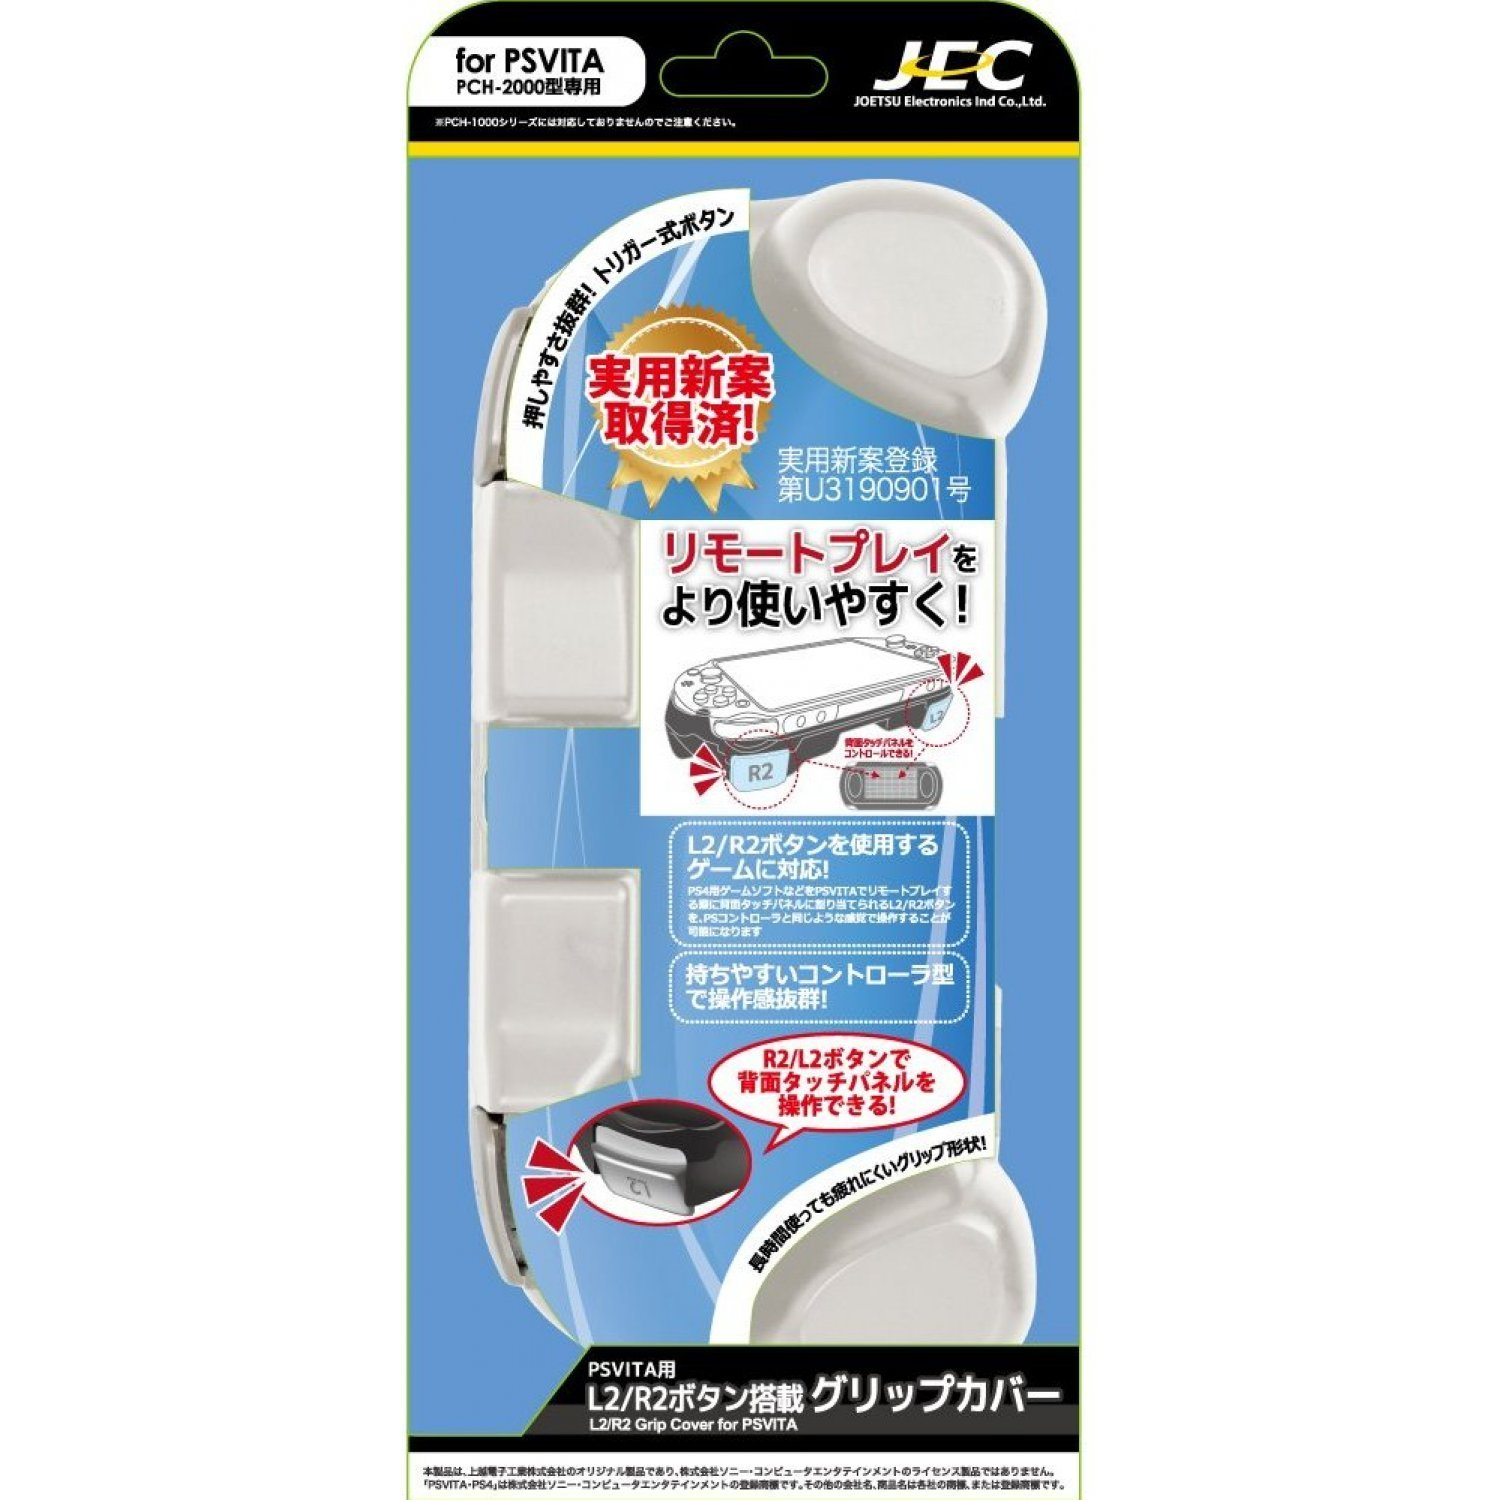 L2//R2 Button /[Front and Back touch screen/] Grip Cover for PS Vita